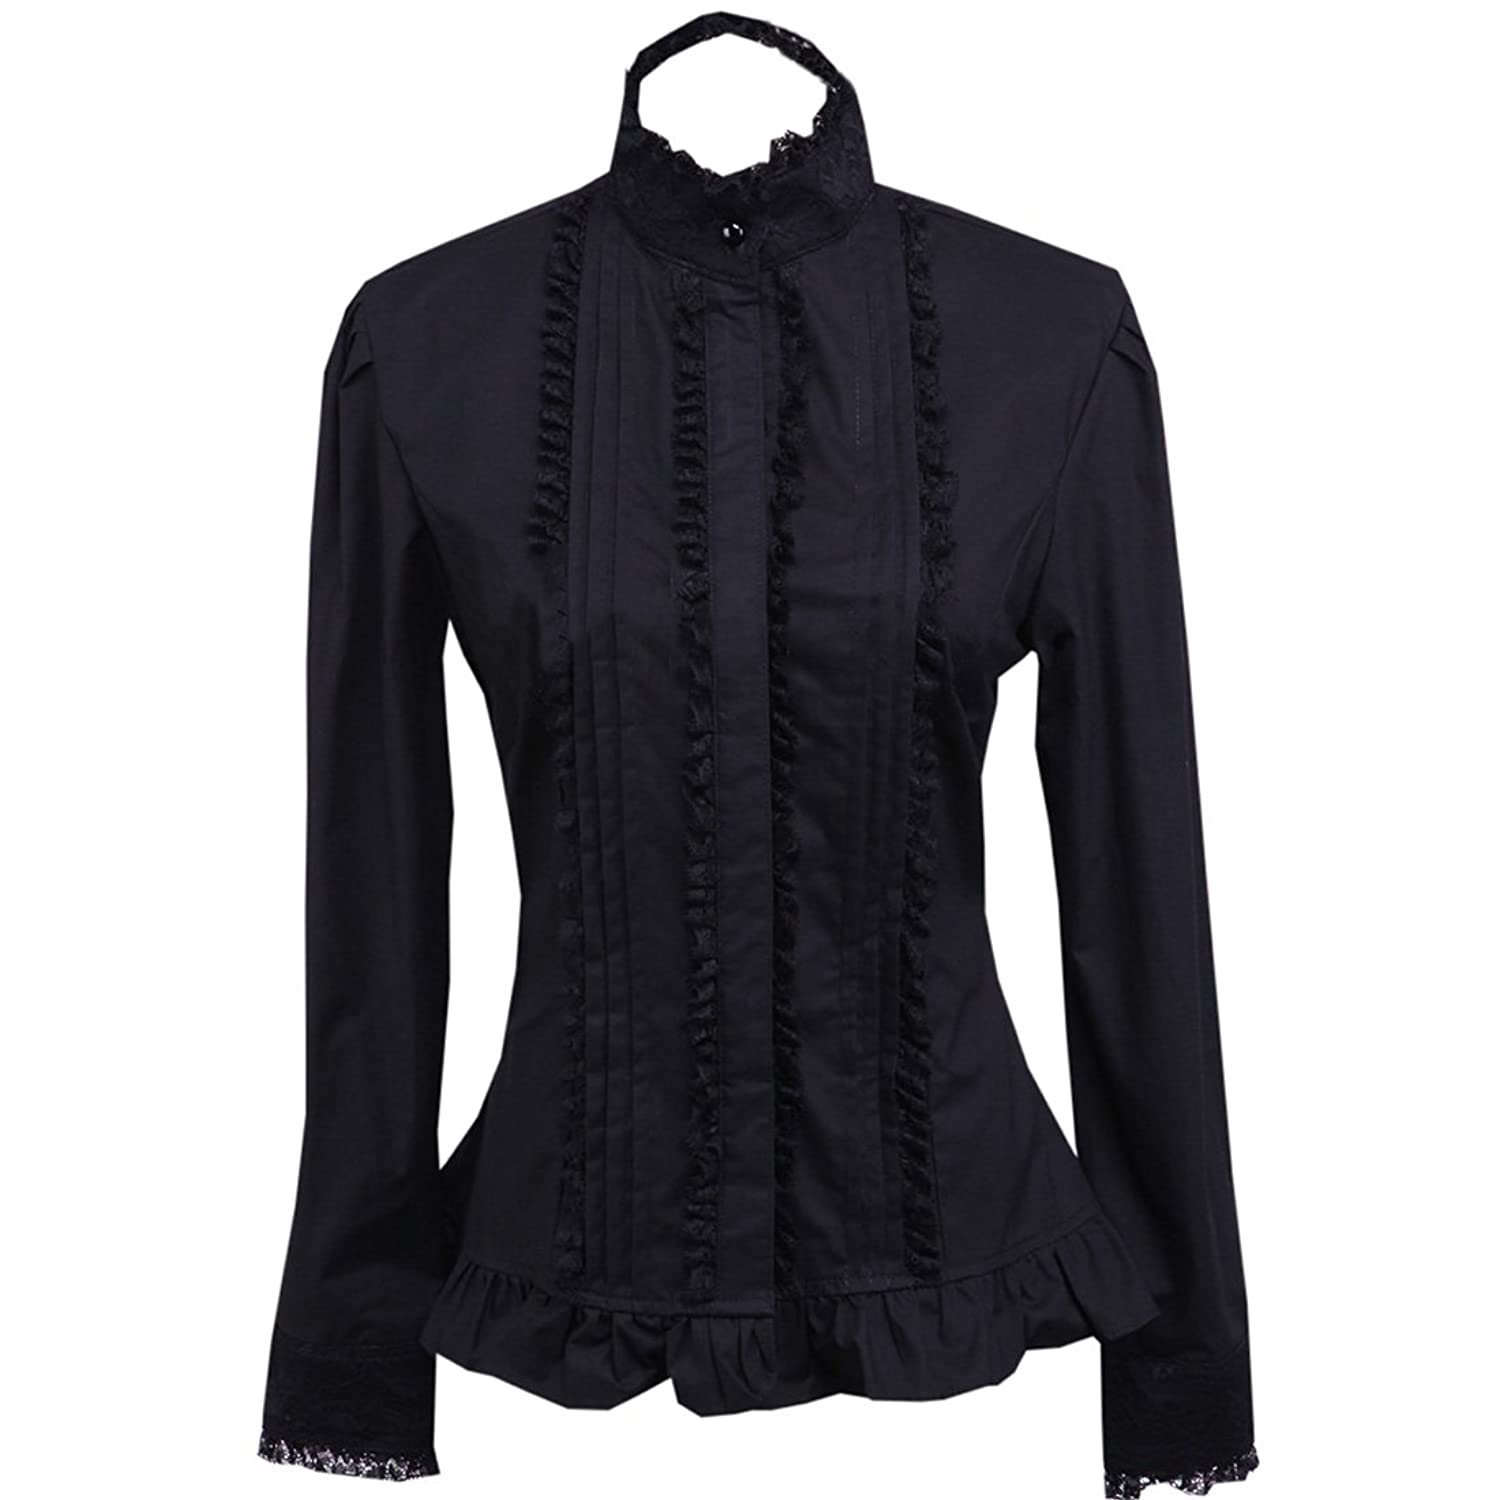 Edwardian Style Blouses Partiss Womens Black Pintucks Lolita Blouse $29.99 AT vintagedancer.com